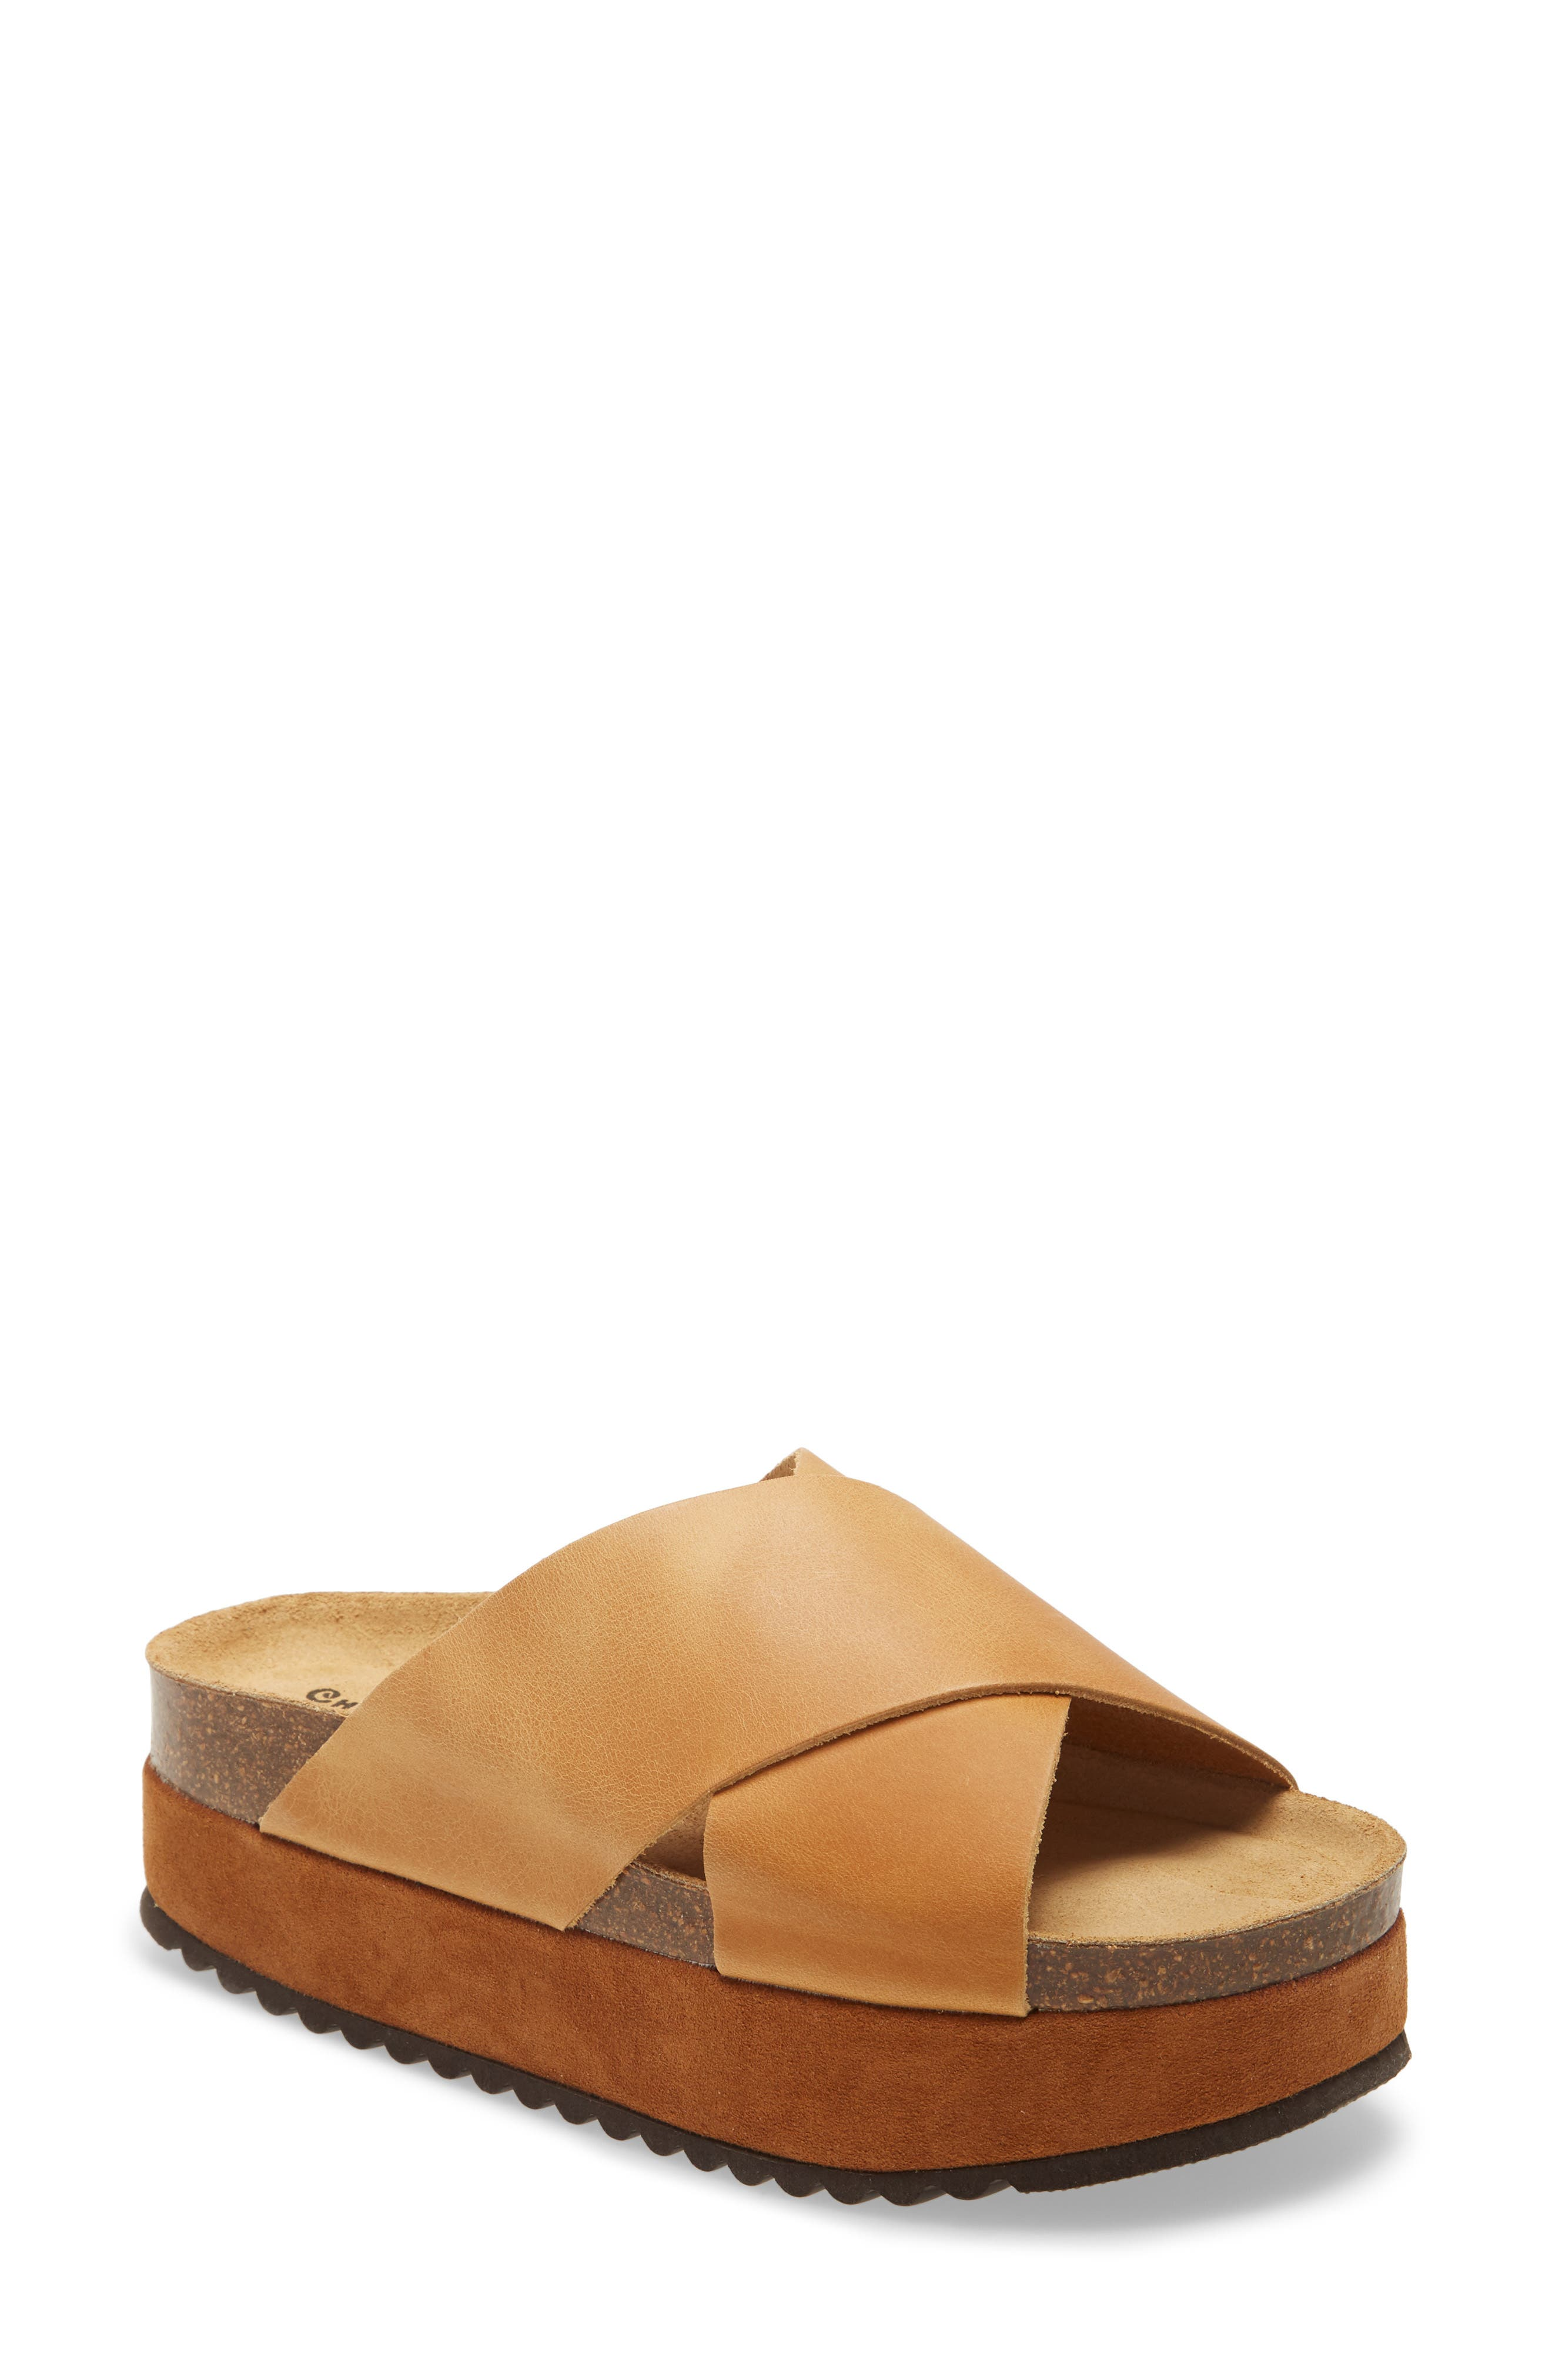 A real cork midsole and toothy rubber tread lay the foundation for a suede flatform with crisscrossed straps of smooth leather. Style Name: Chocolat Blu Lillian Platform Slide (Women). Style Number: 5987308. Available in stores.